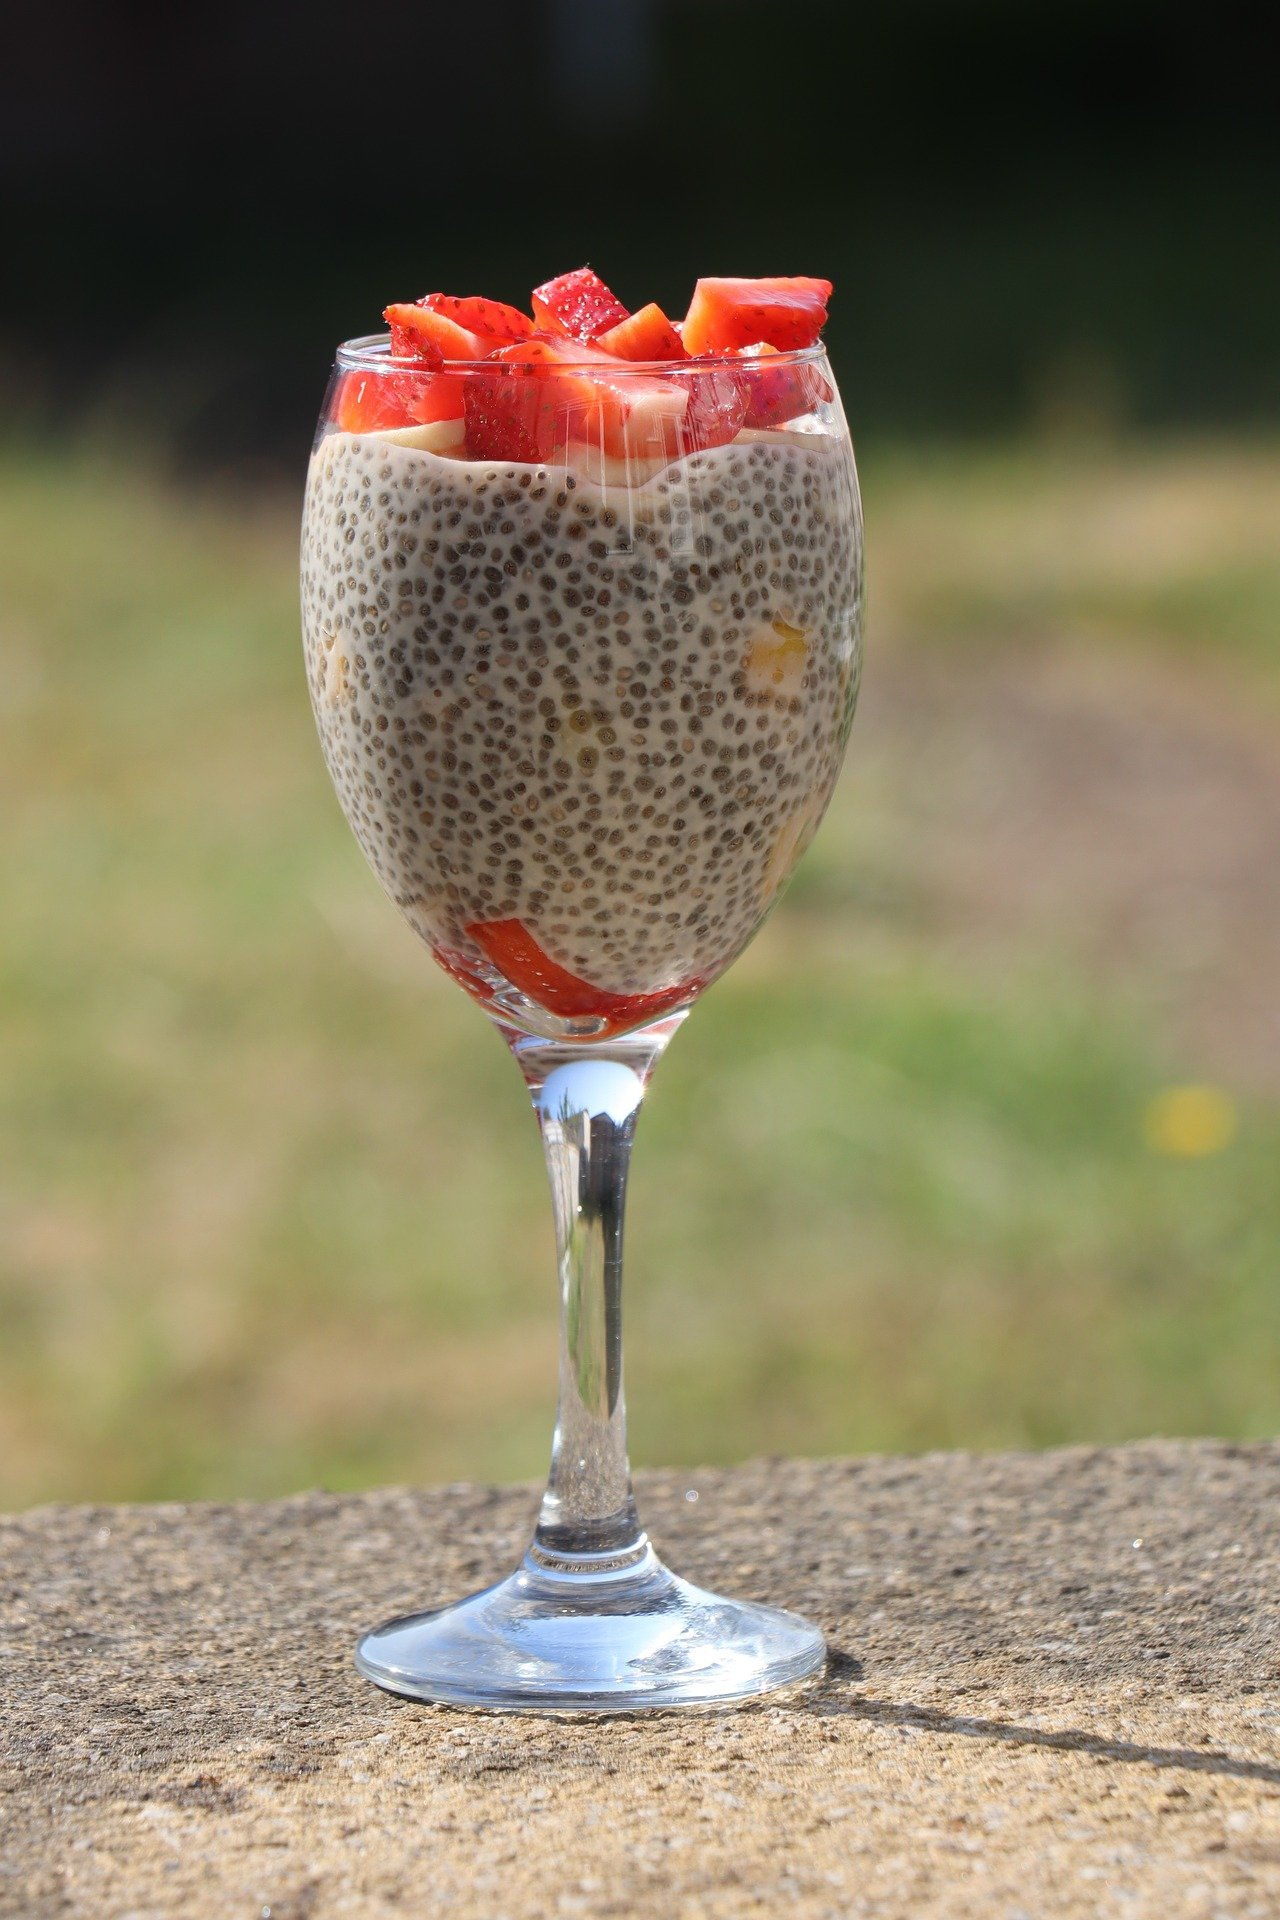 chia seed benefits and uses